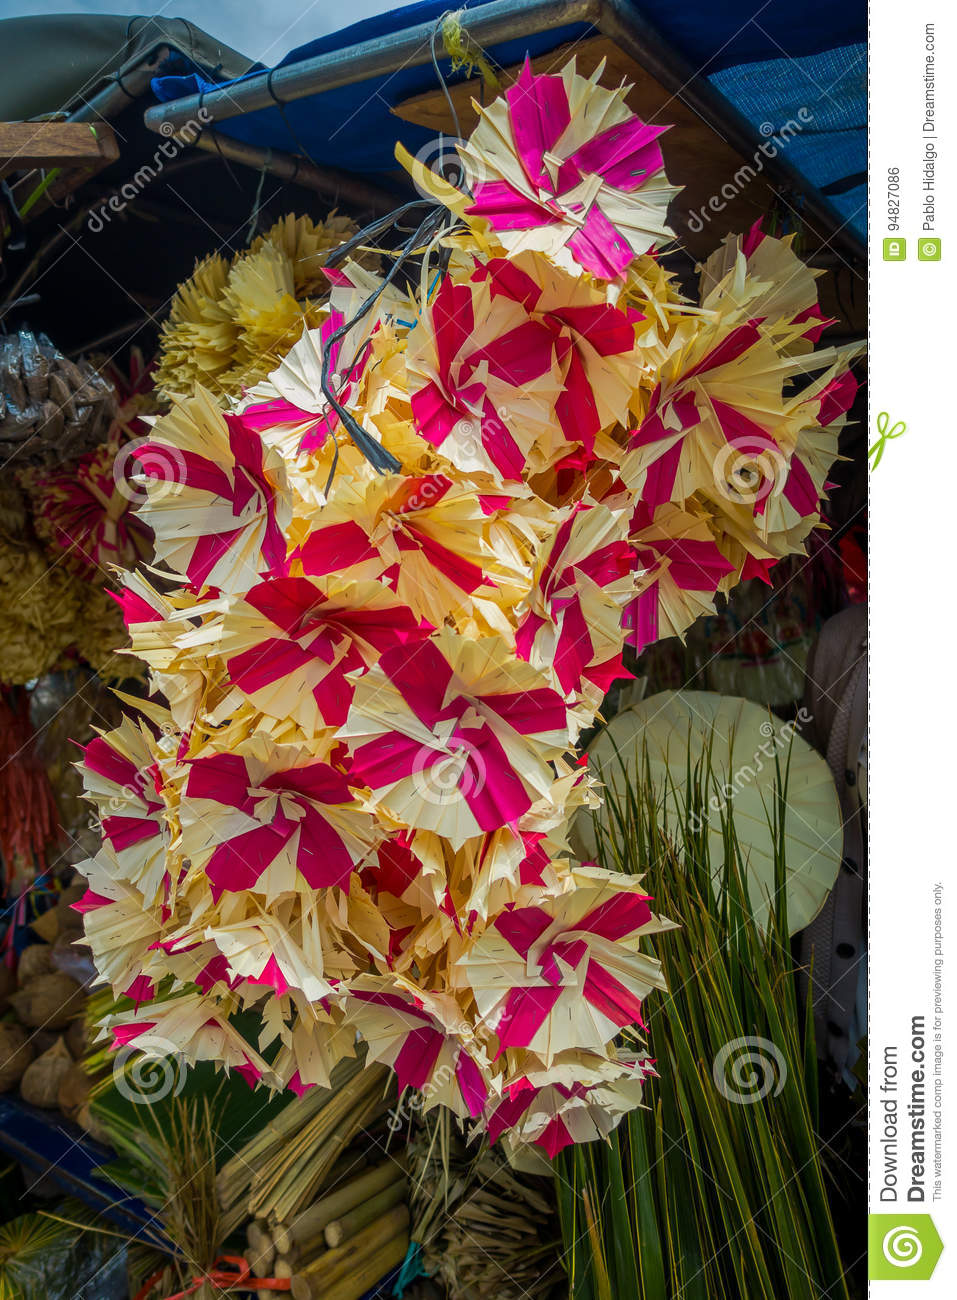 A market with an arrangement of flowers made of paper, in the city of Denpasar in Indonesia